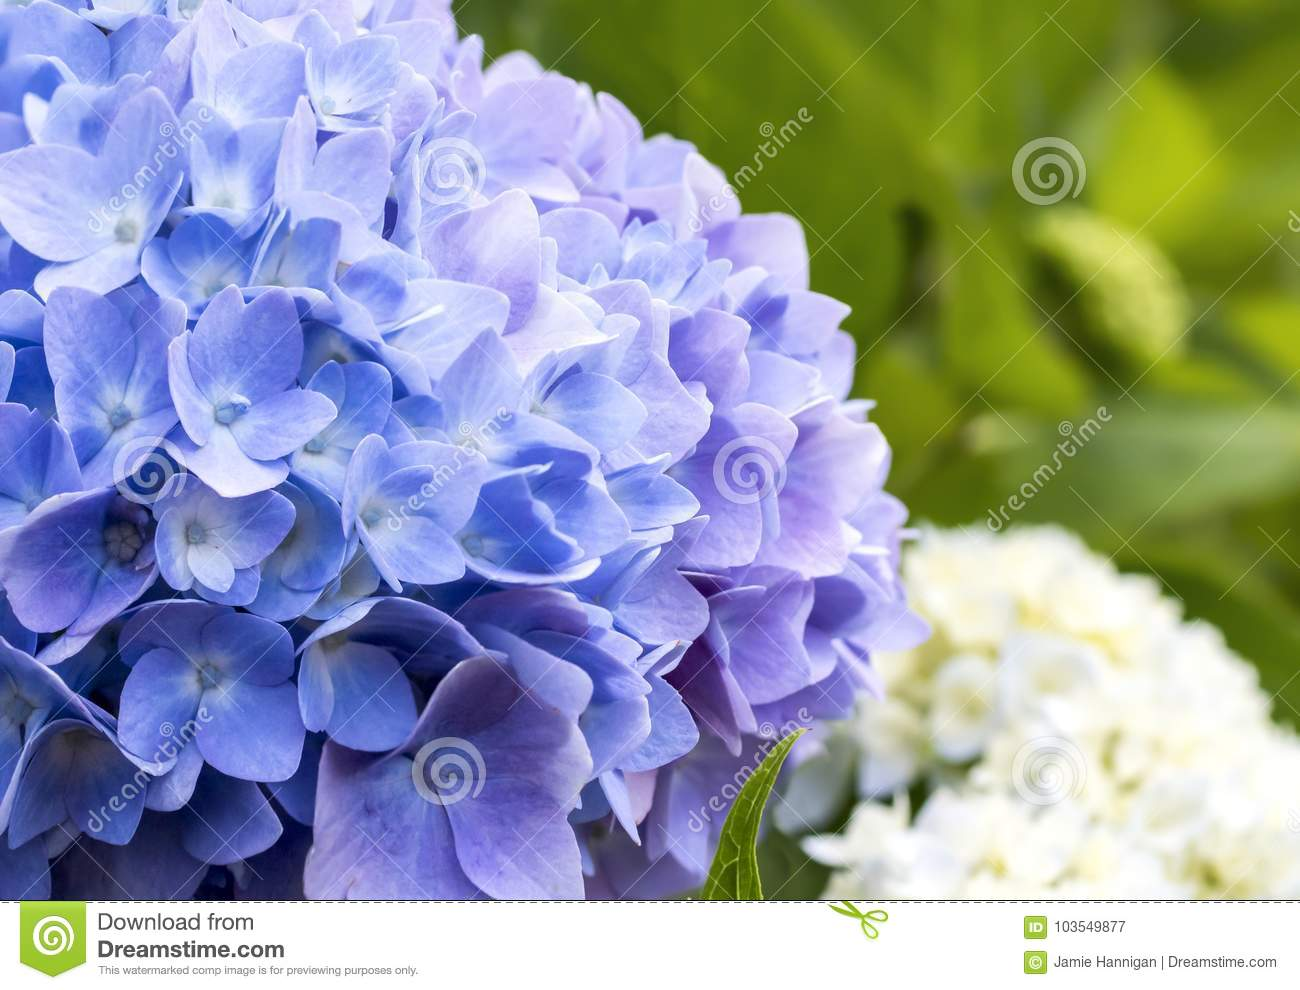 Macro blue and purple hydrangea with white in background stock image download macro blue and purple hydrangea with white in background stock image image of close izmirmasajfo